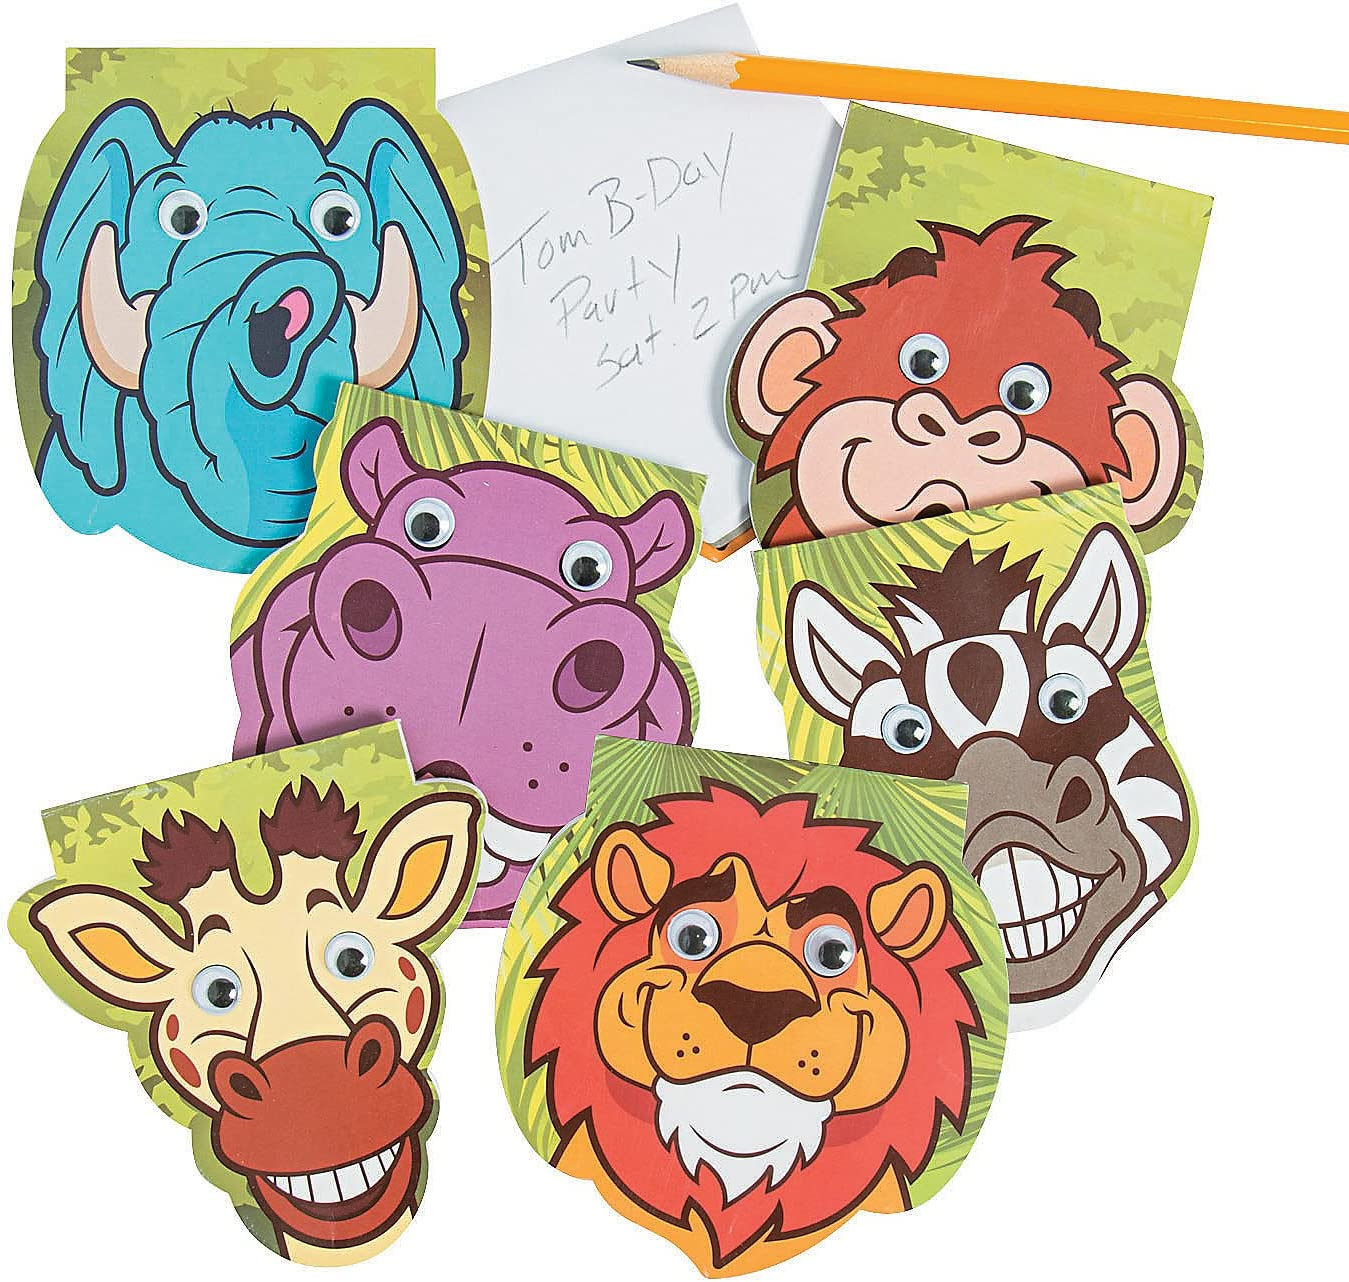 Stationery Fun Express Notepads Zoo Animal Notepads W//Google Eyes 24 Pieces Notepads